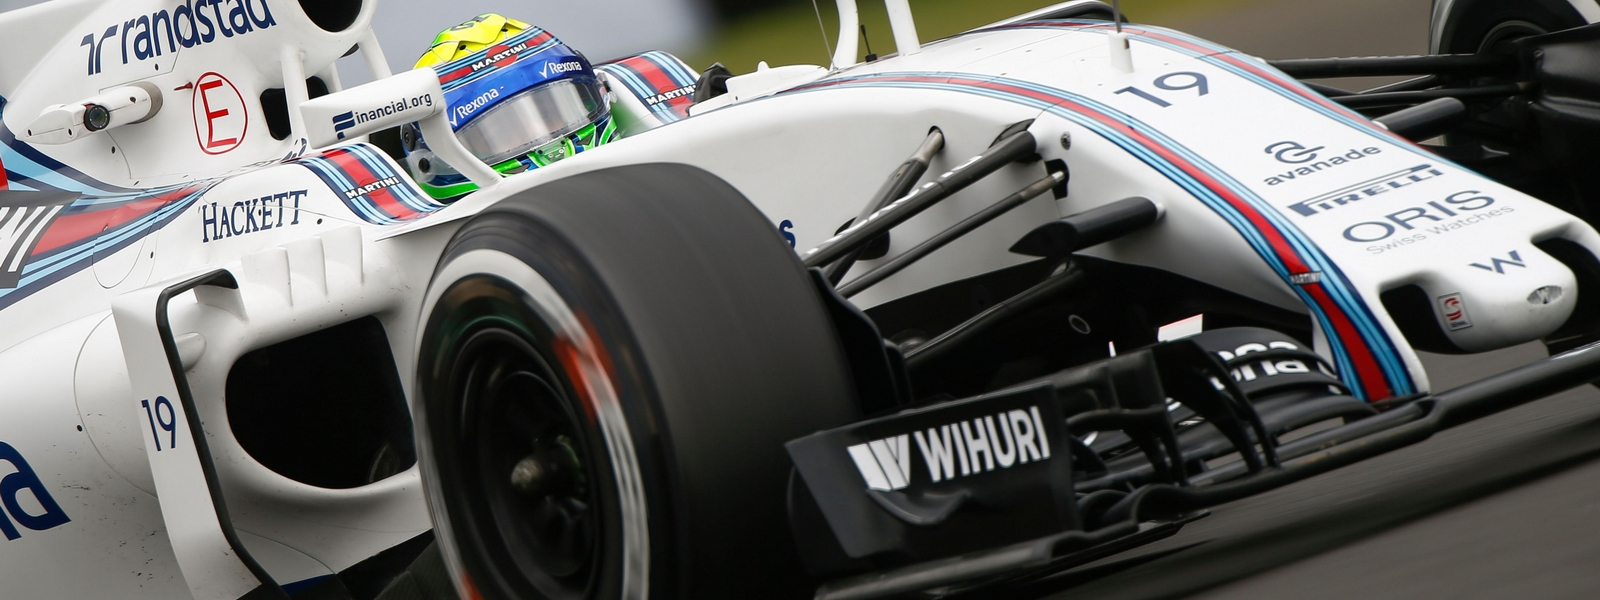 Motorsports: FIA Formula One World Championship 2016, Grand Prix of Mexico,  #19 Felipe Massa (BRA, Williams Martini Racing),  *** Local Caption *** +++ www.hoch-zwei.net +++ copyright: HOCH ZWEI +++